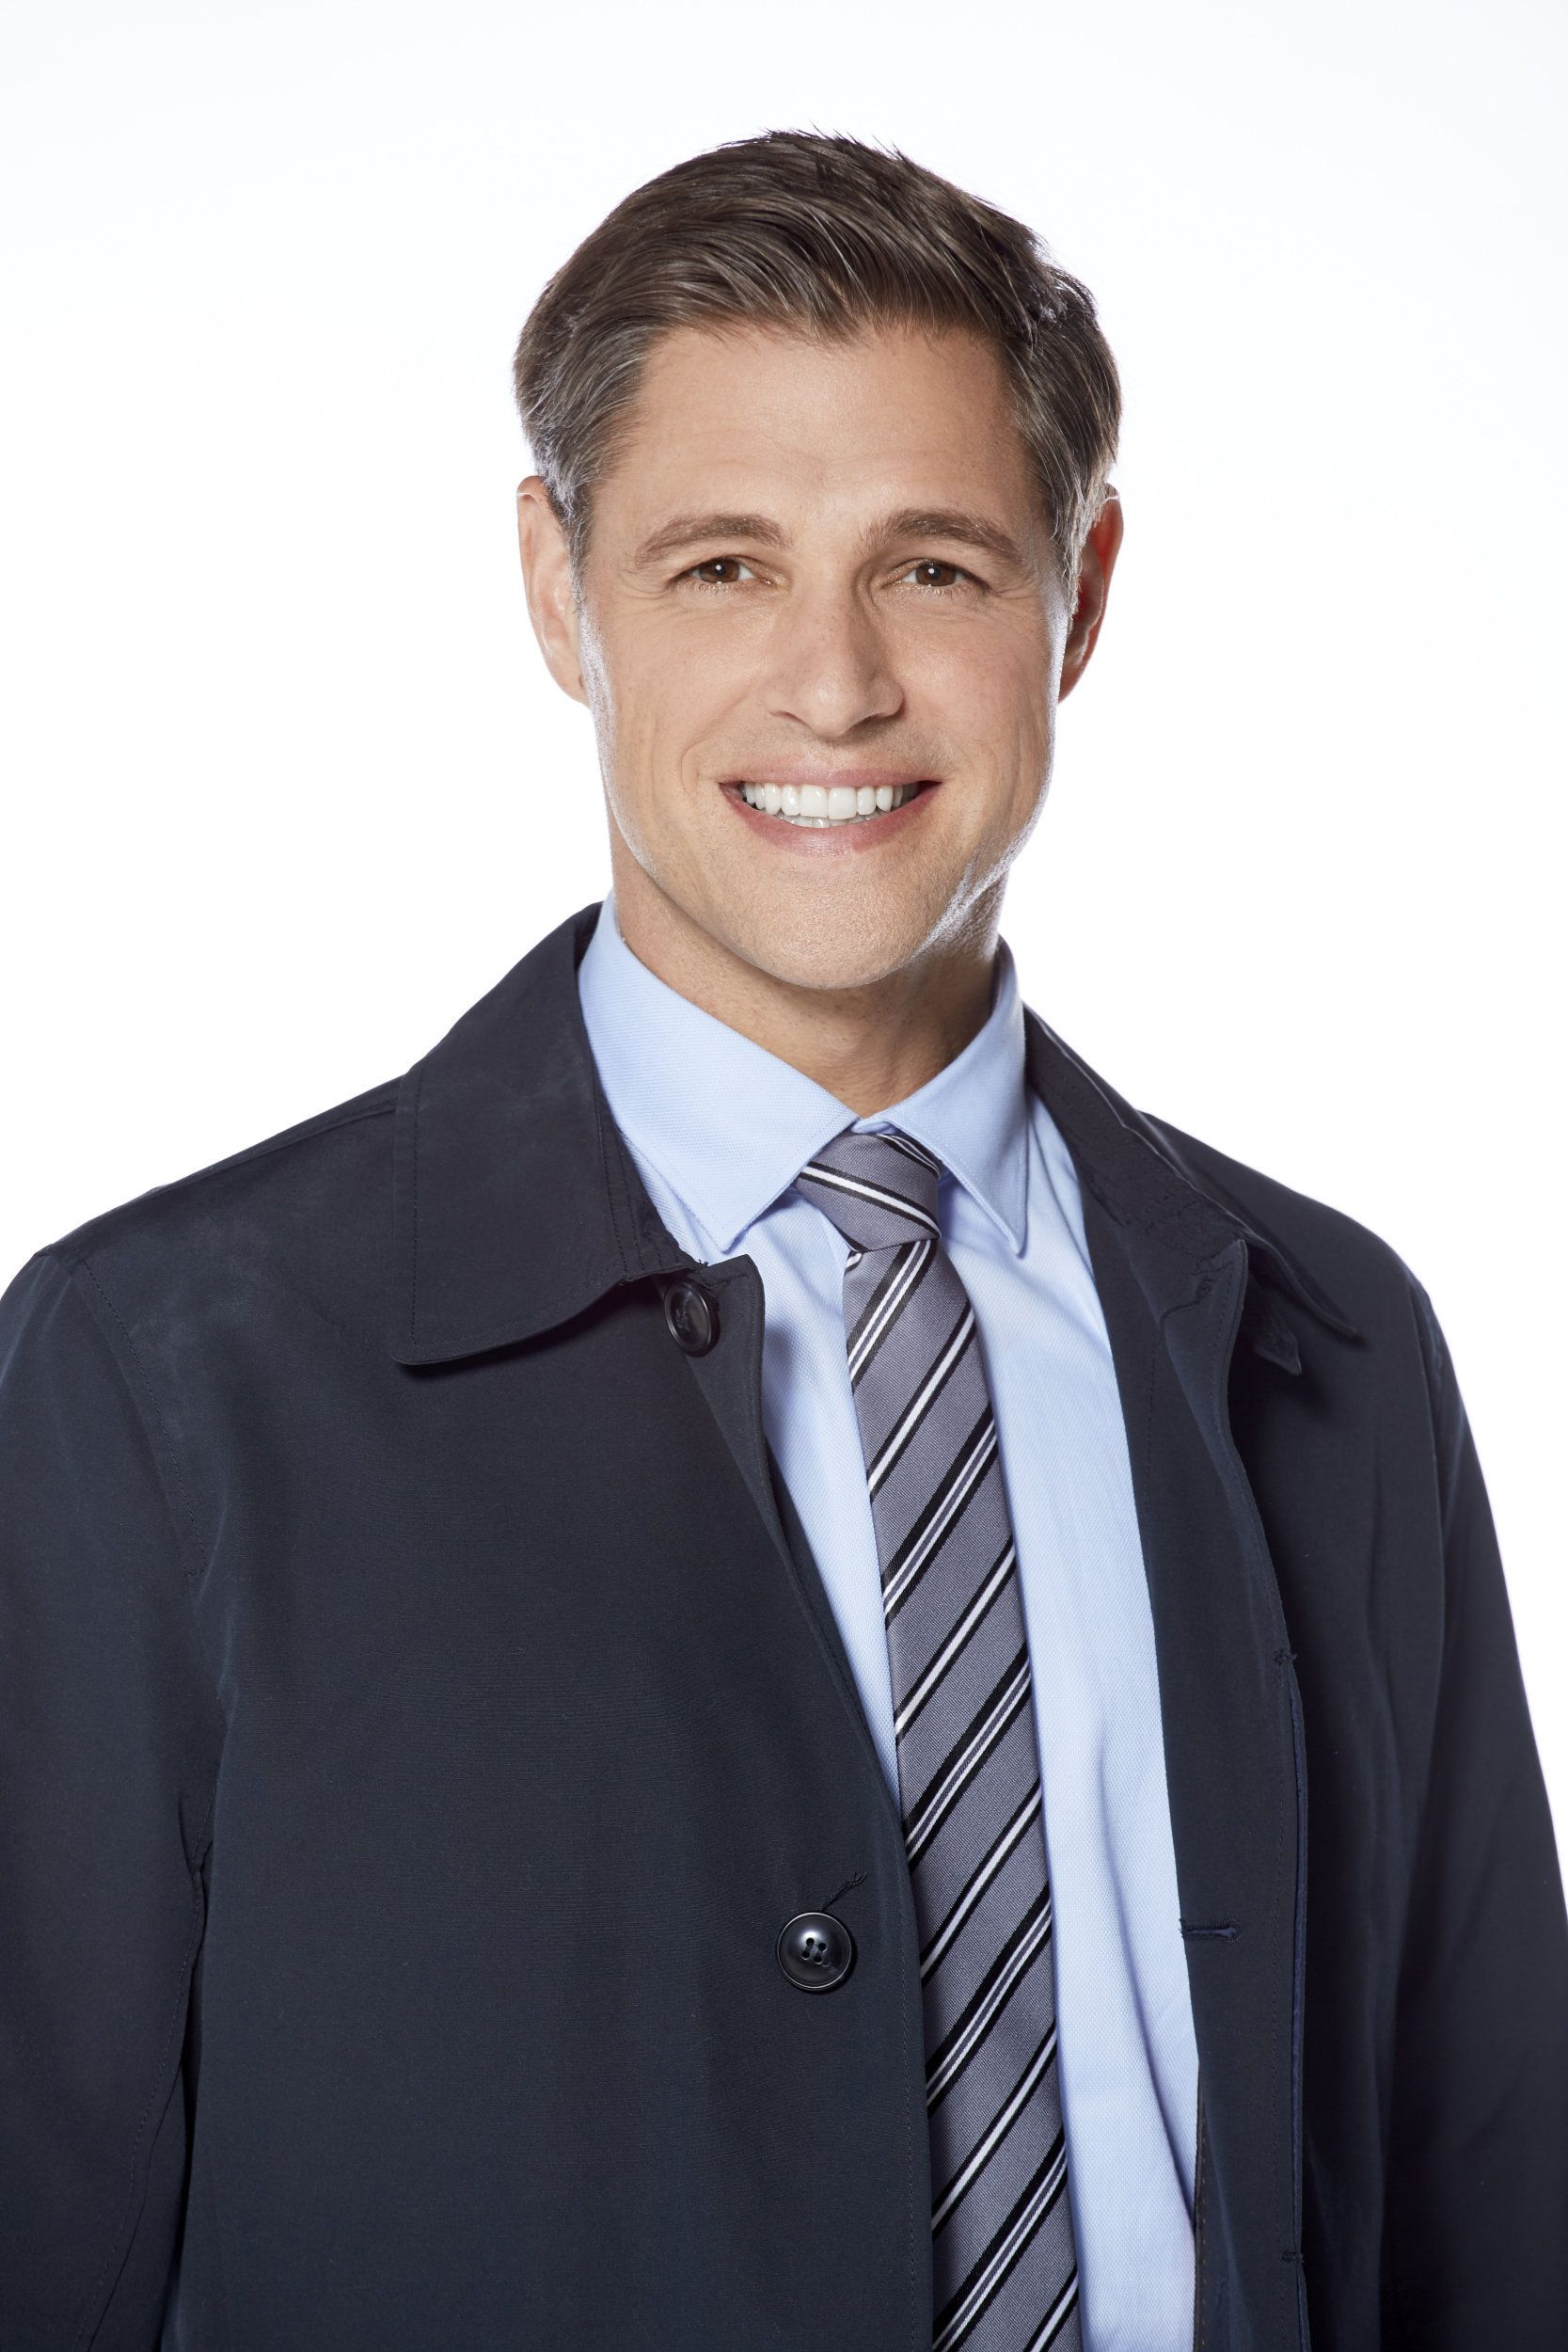 Learn more about the cast of the Hallmark Channel original